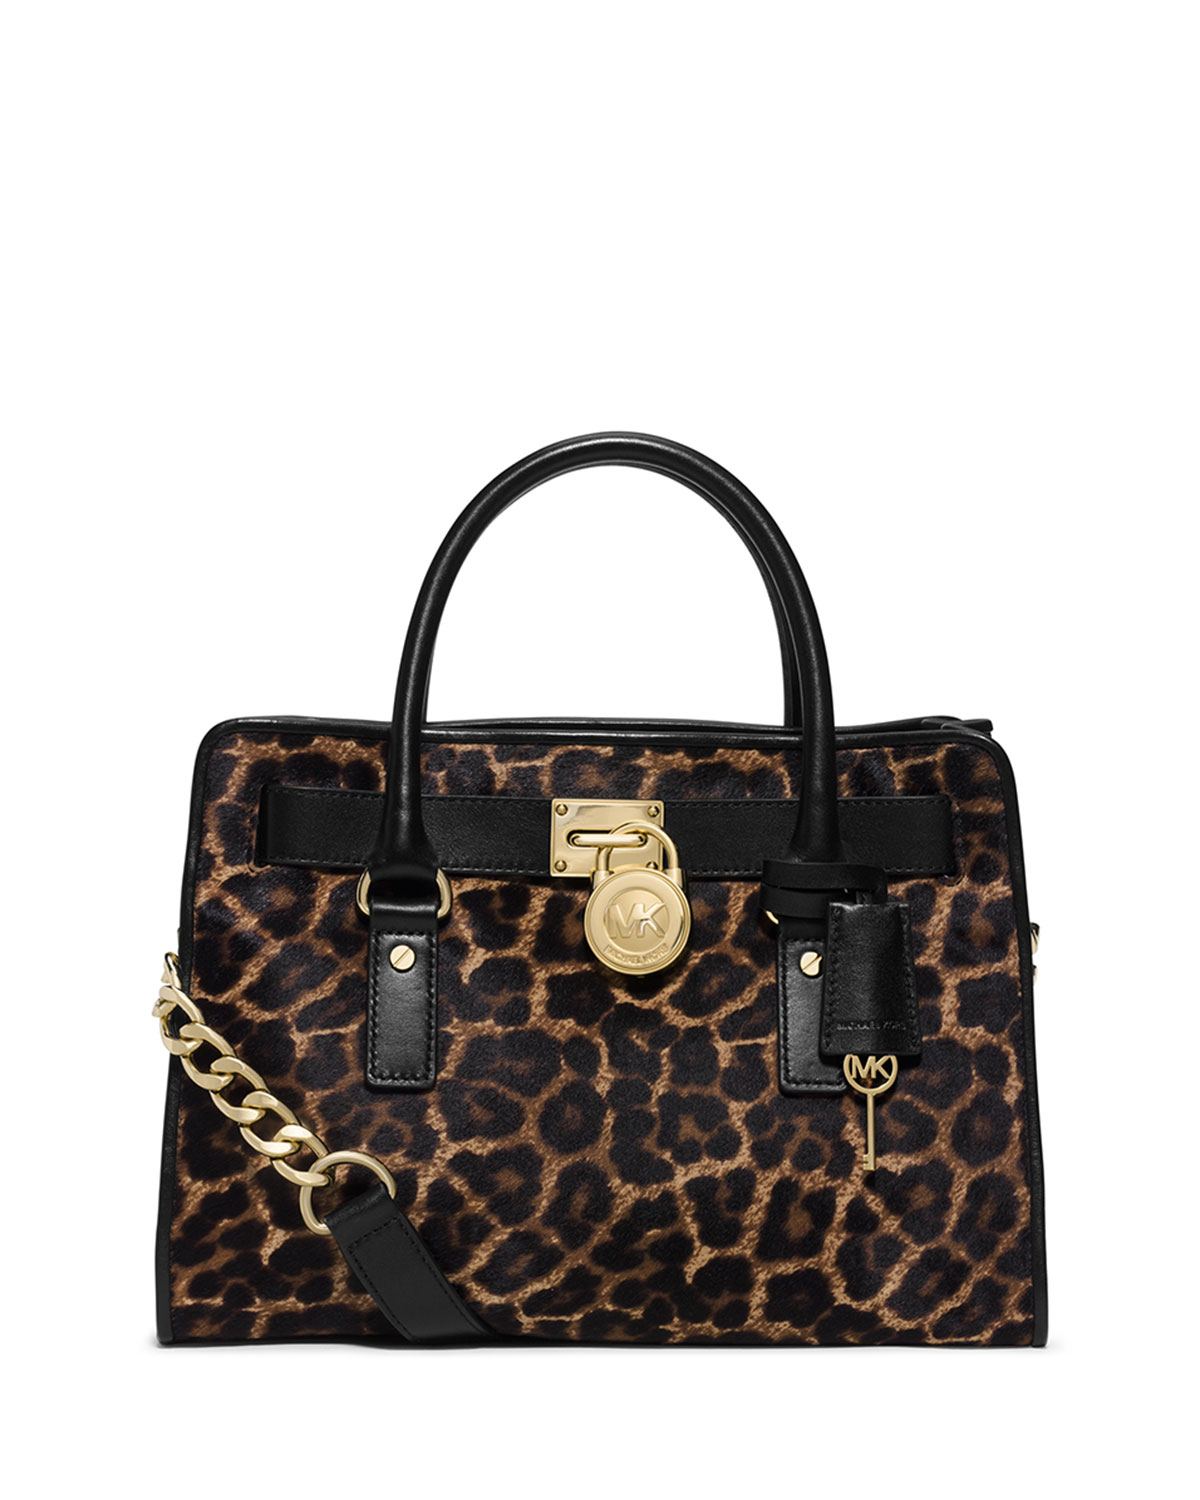 Hamilton Cheetah Print Calf Hair Satchel Bag